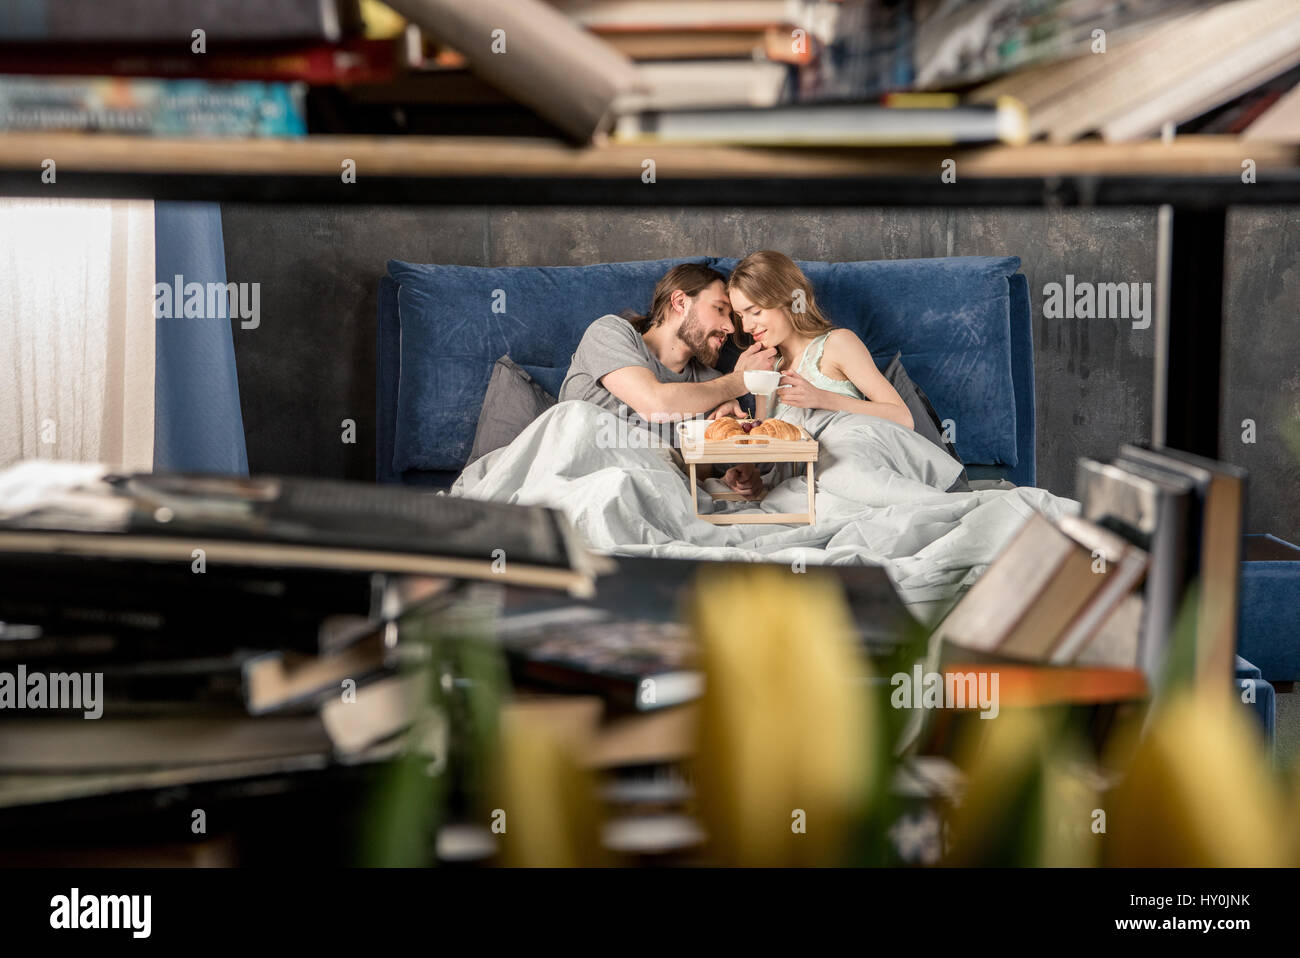 View through the bookshelf of young couple has breakfast in bed - Stock Image